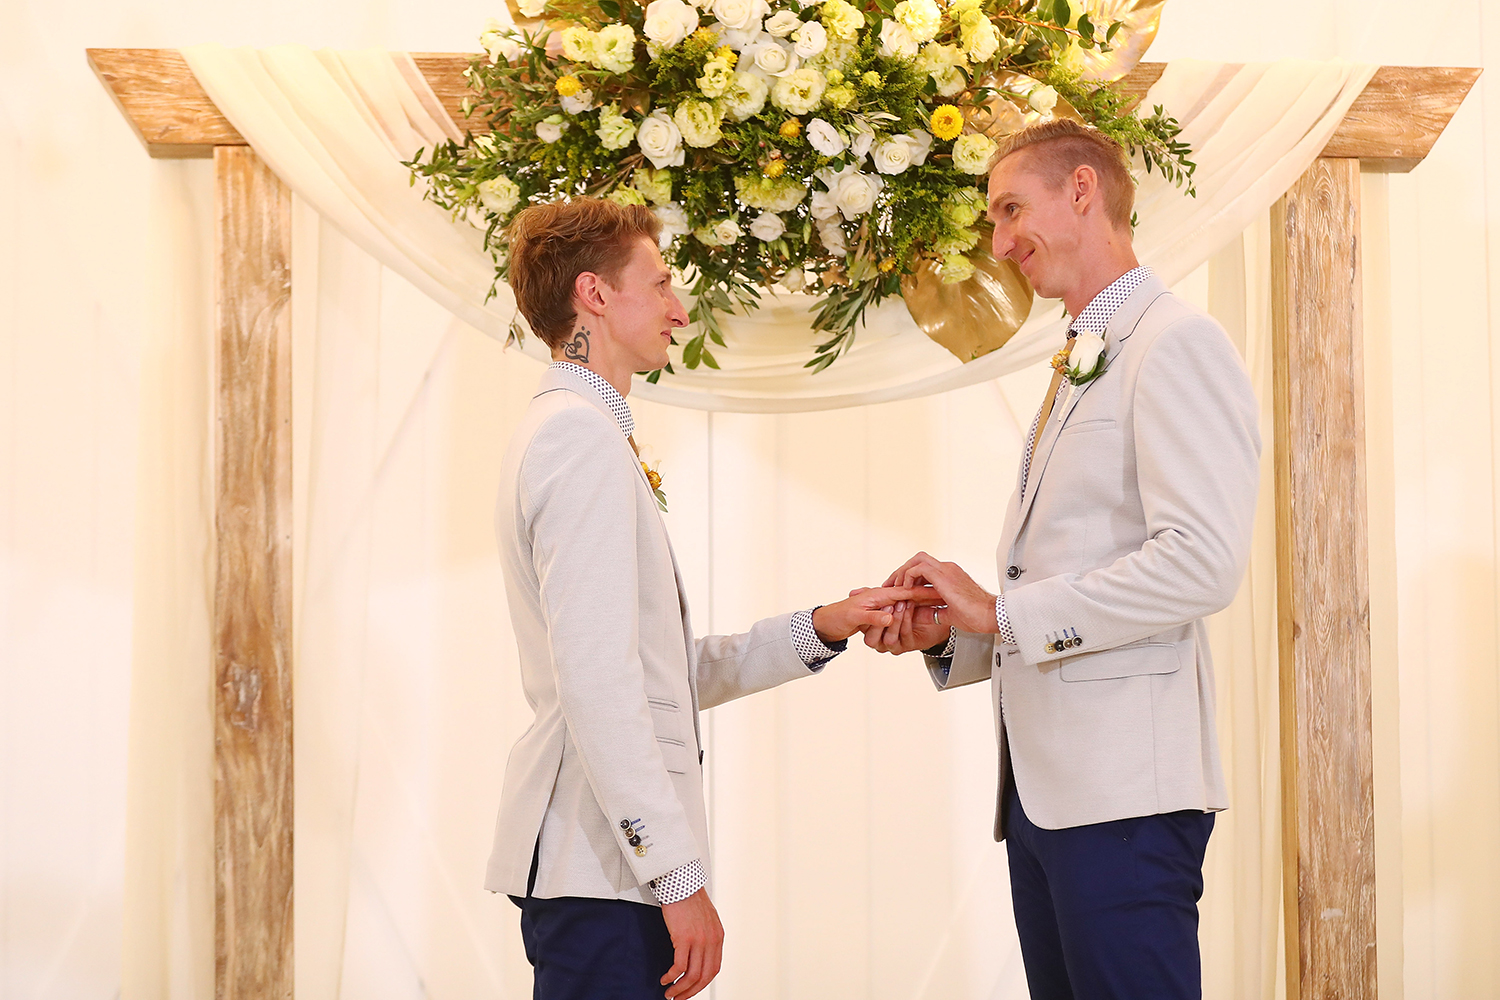 Wedding bells finally ring for Australia's gay couples